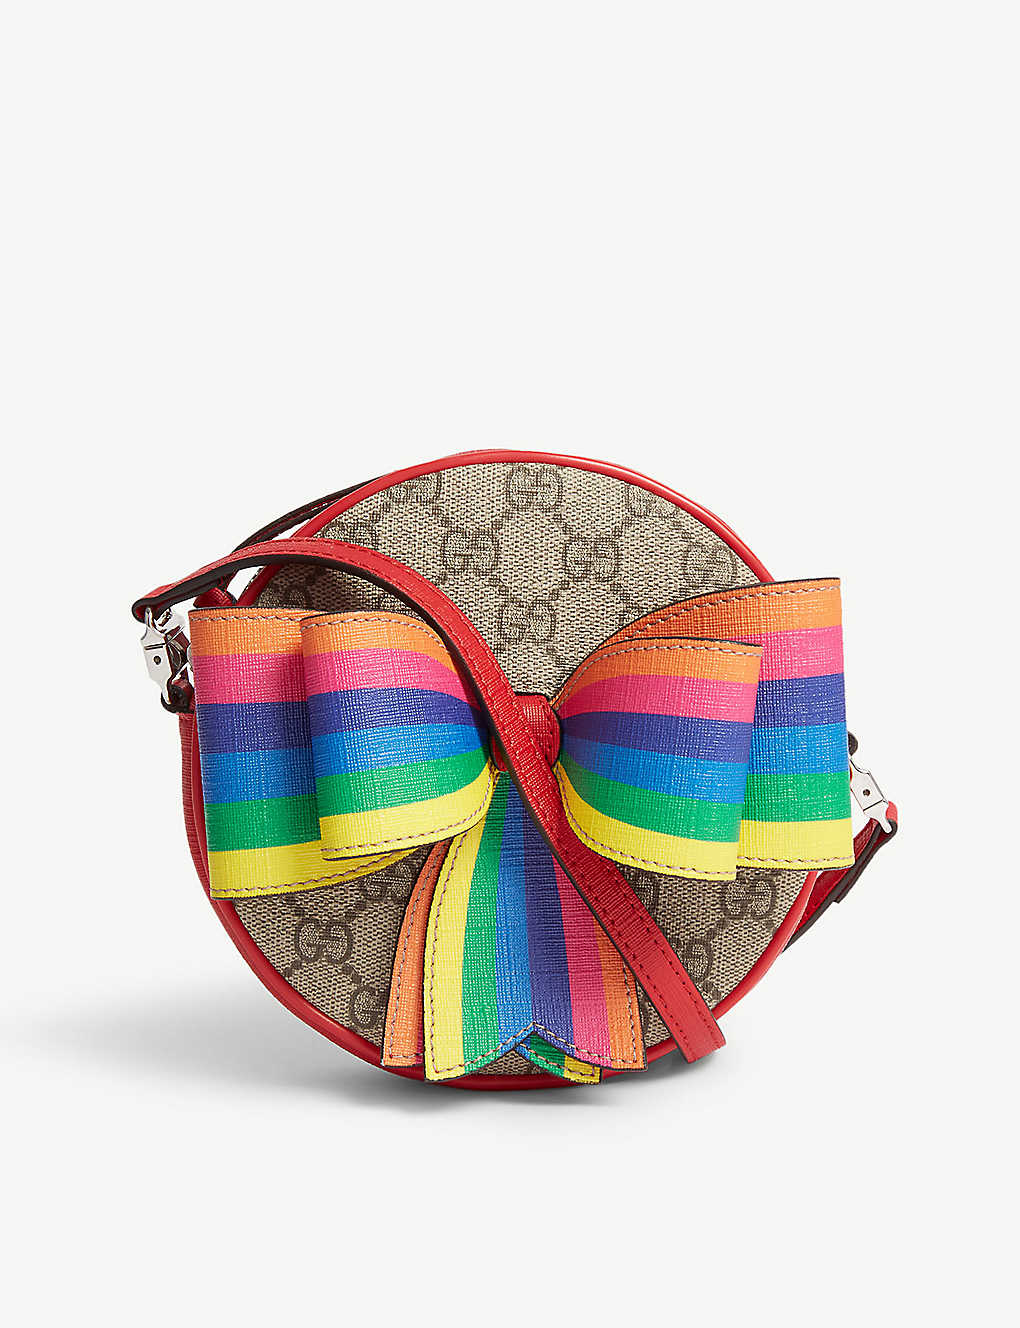 ba15acbba83b GUCCI - GG Supreme rainbow cross-body bag | Selfridges.com